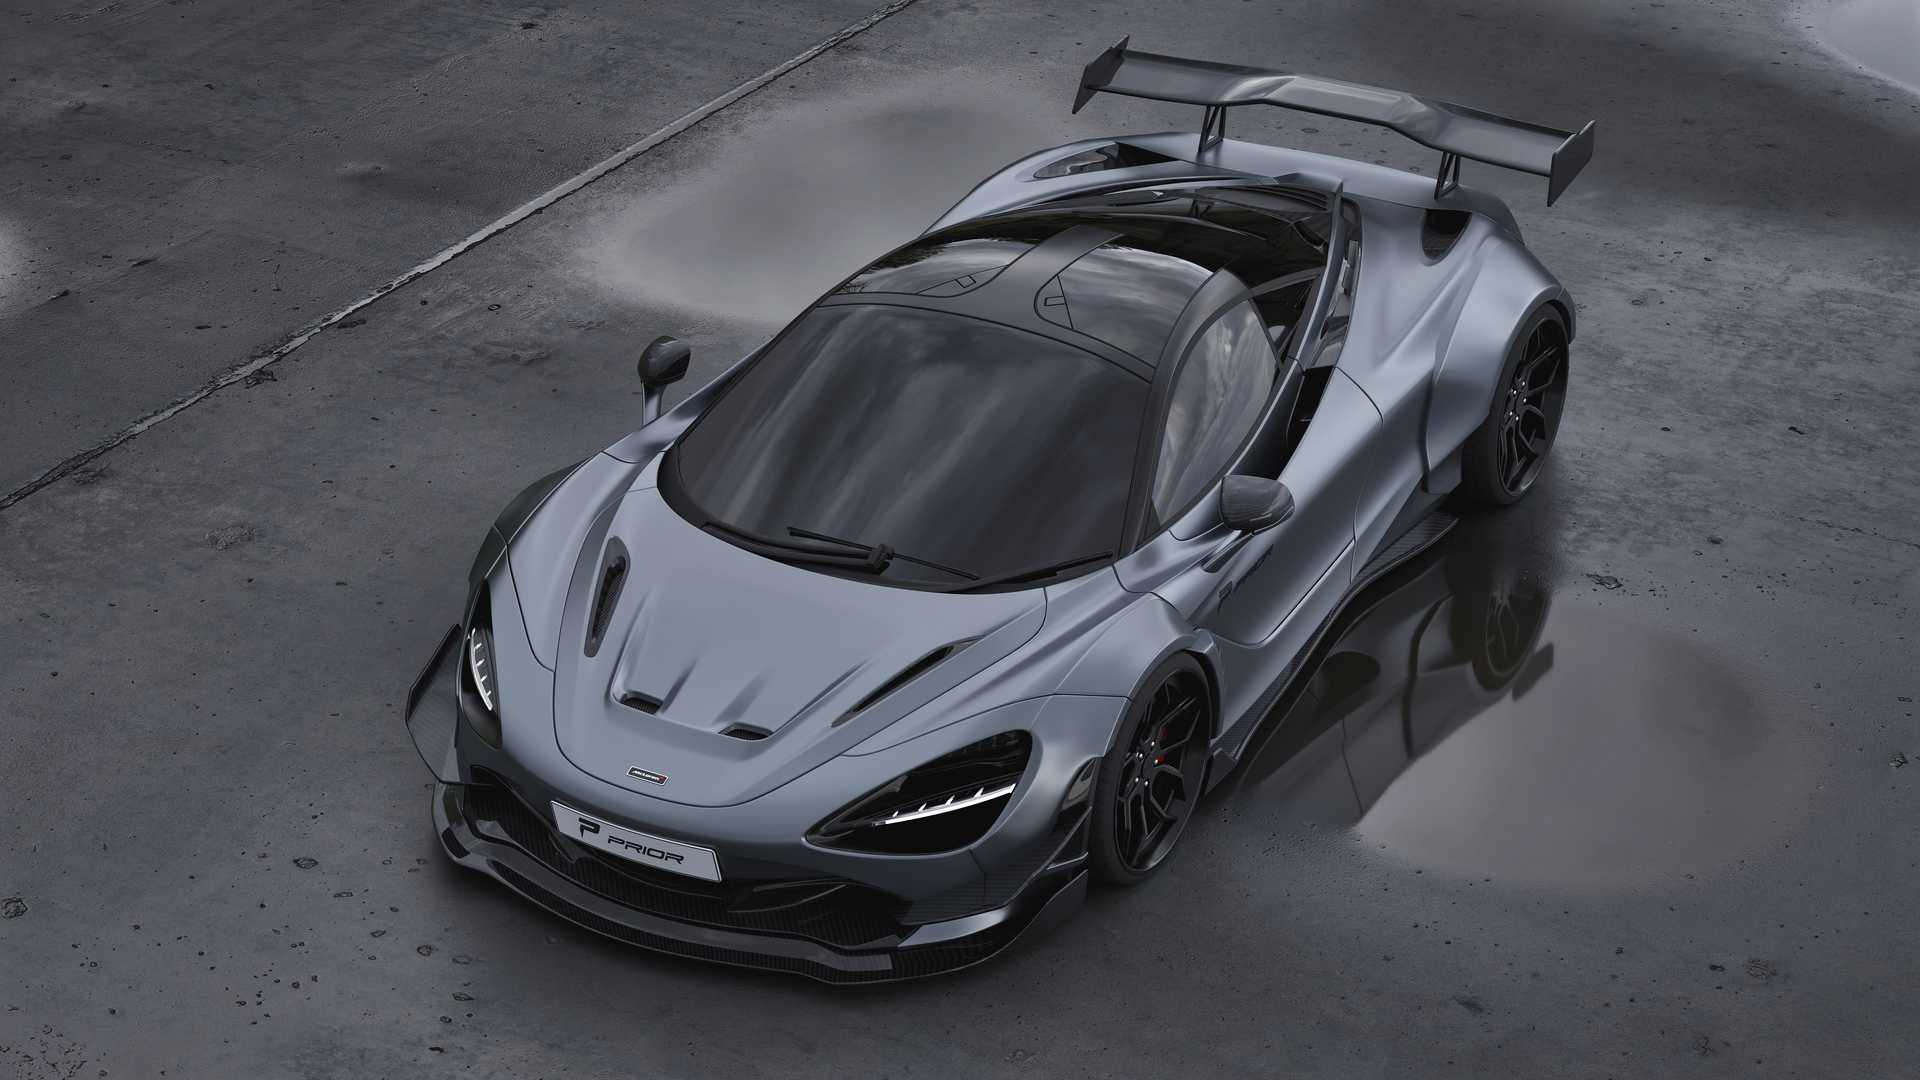 mclaren-720s-by-prior-design-9